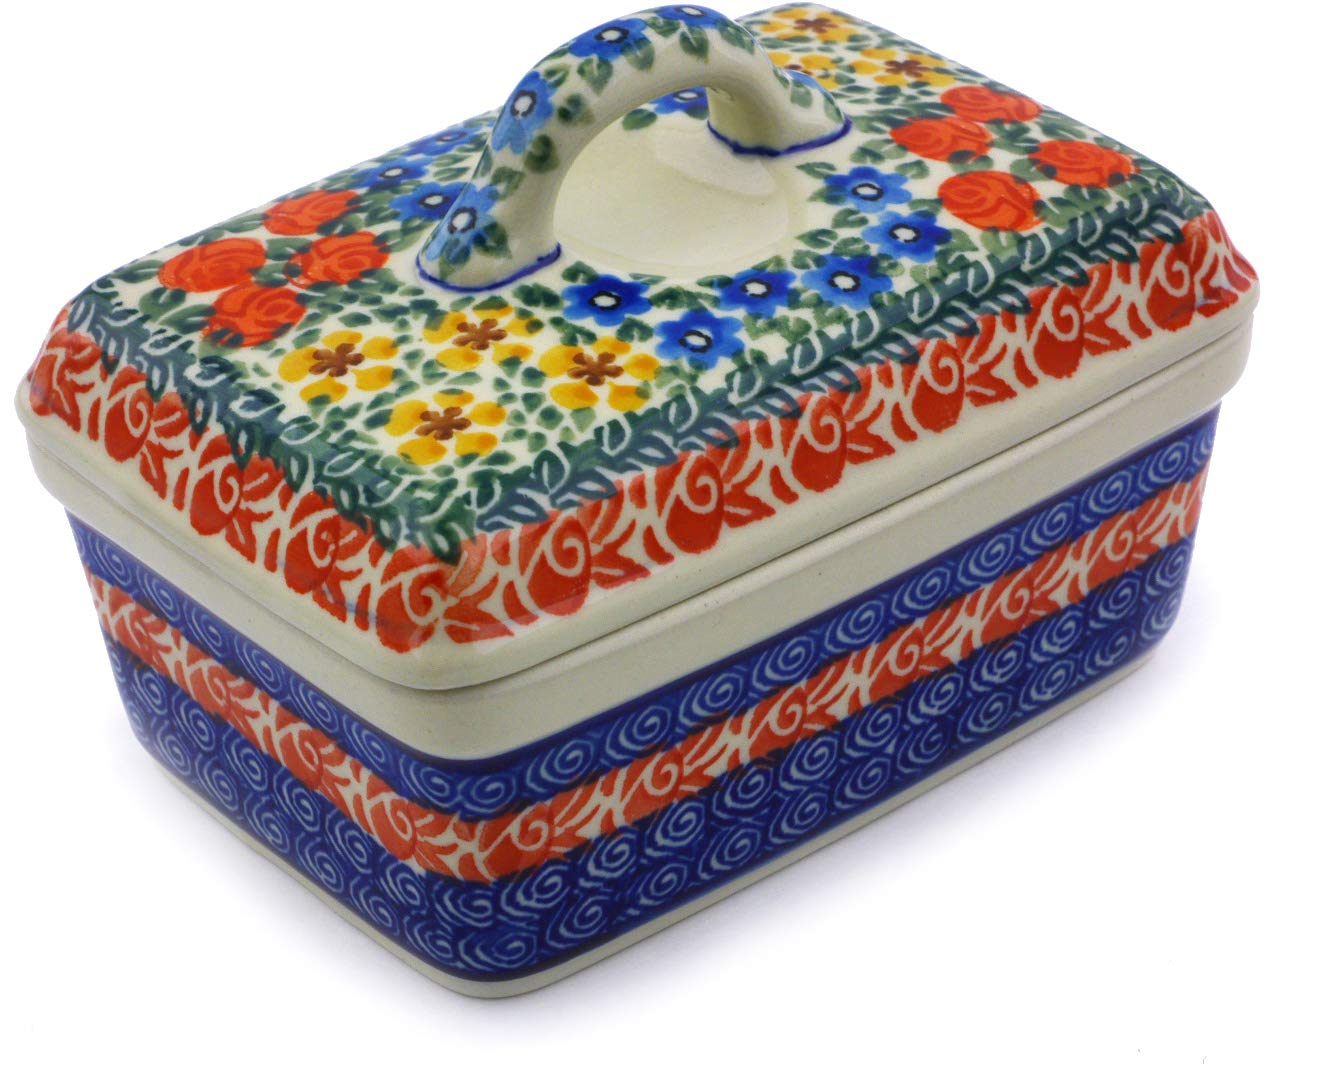 Polish Pottery 5½-inch Butter Dish made by Ceramika Artystyczna (Perennial Border Theme) Signature UNIKAT + Certificate of Authenticity